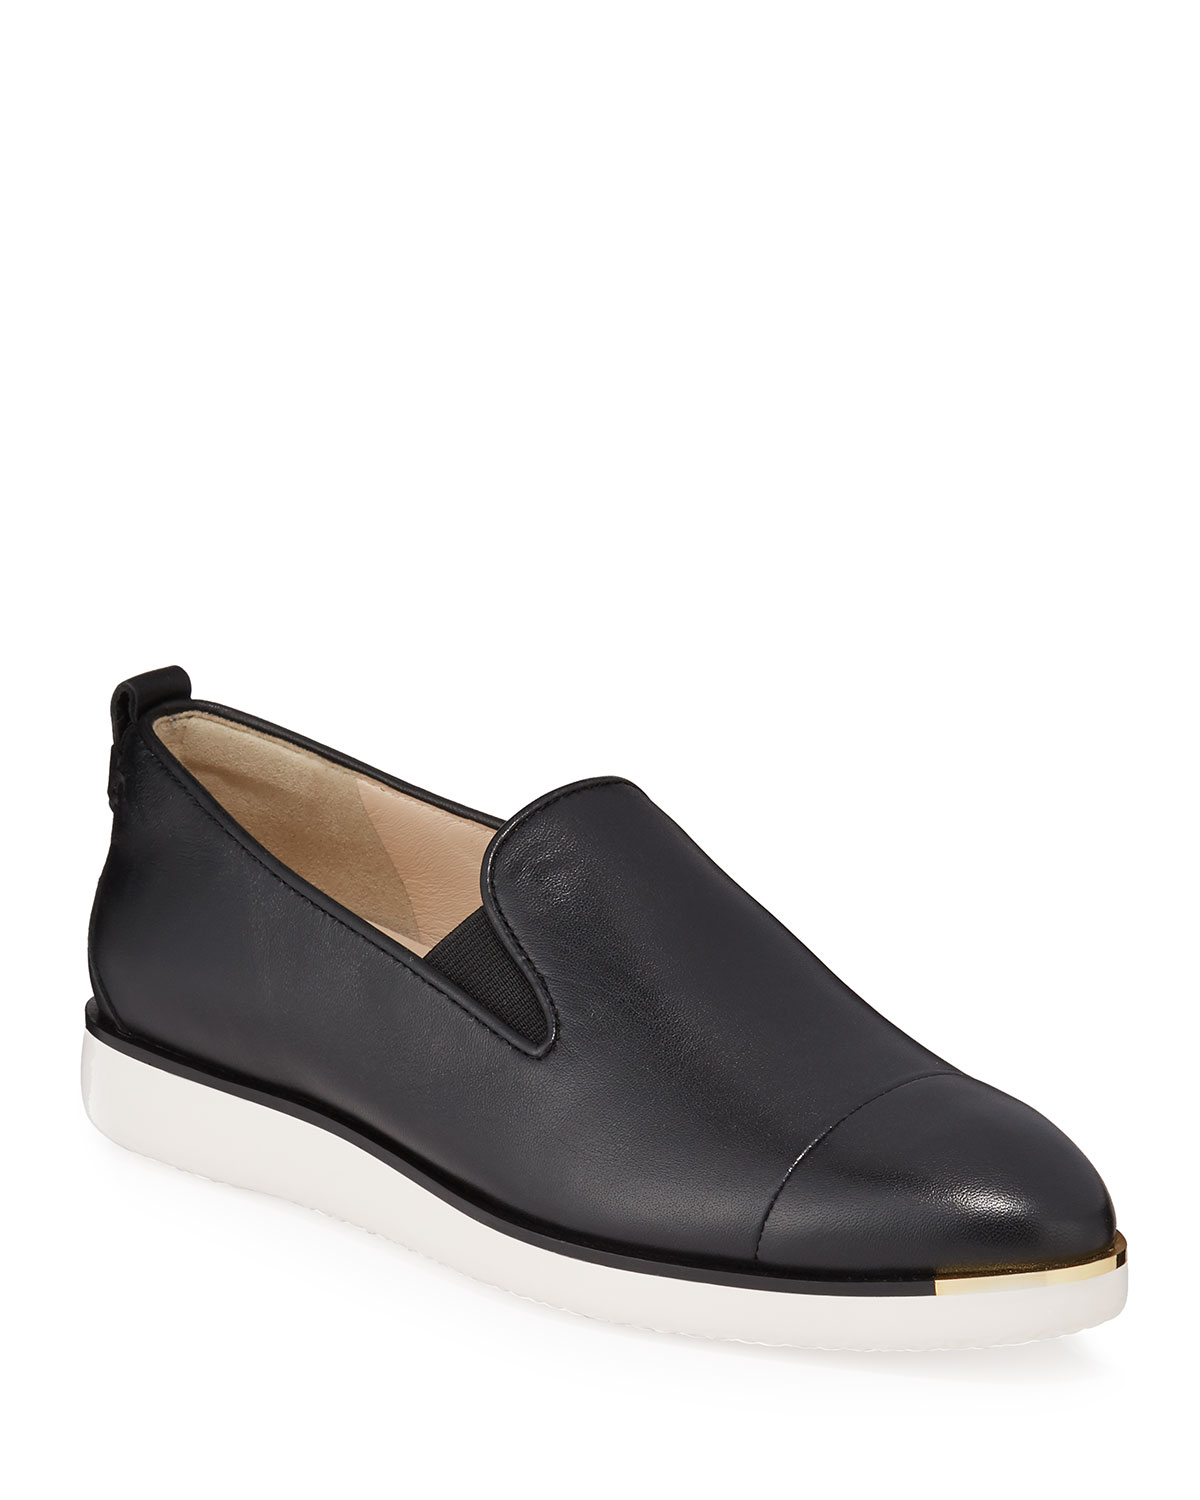 Cole Haan Loafers GRAND AMBITION LEATHER SLIP-ON LOAFERS